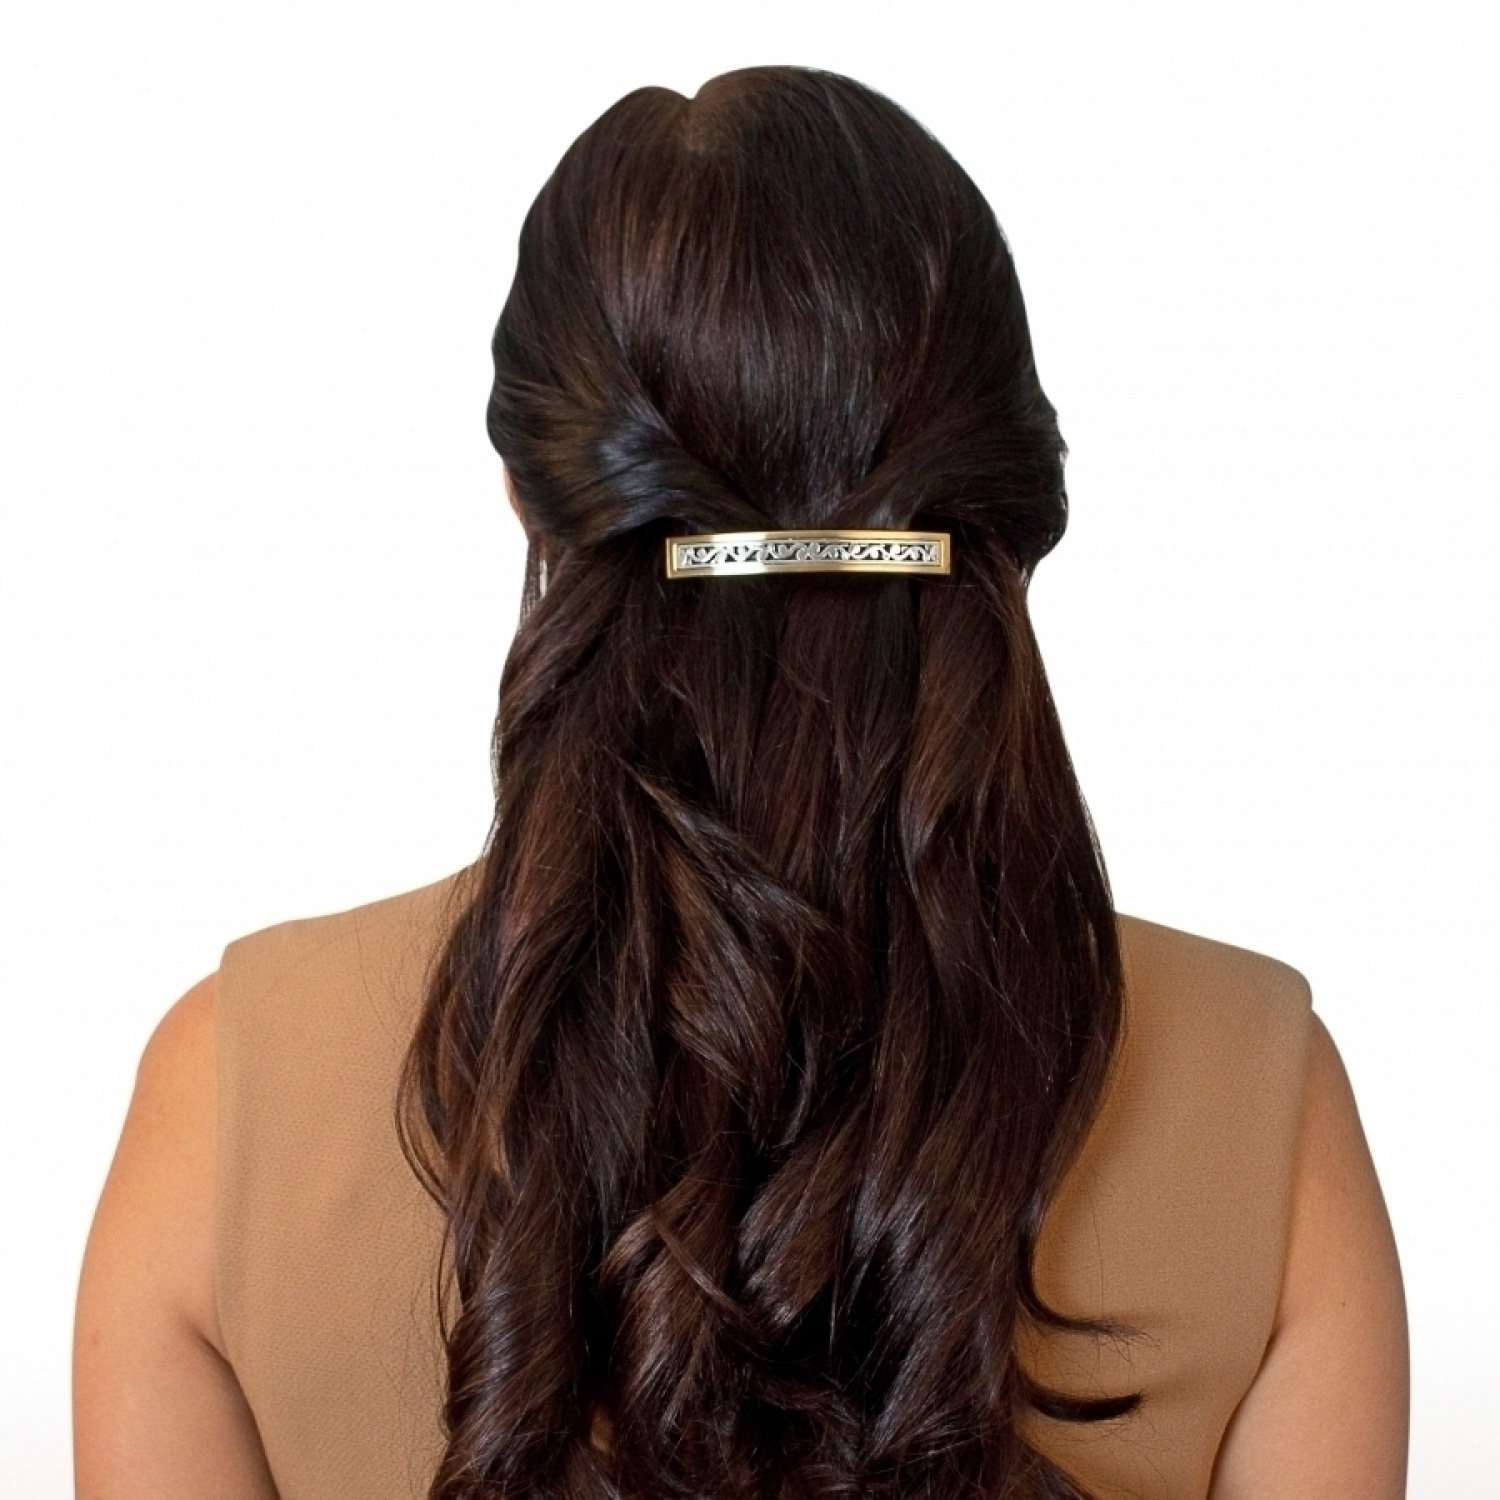 Hair Accessories Deals & Sales at Shop Real Simple.